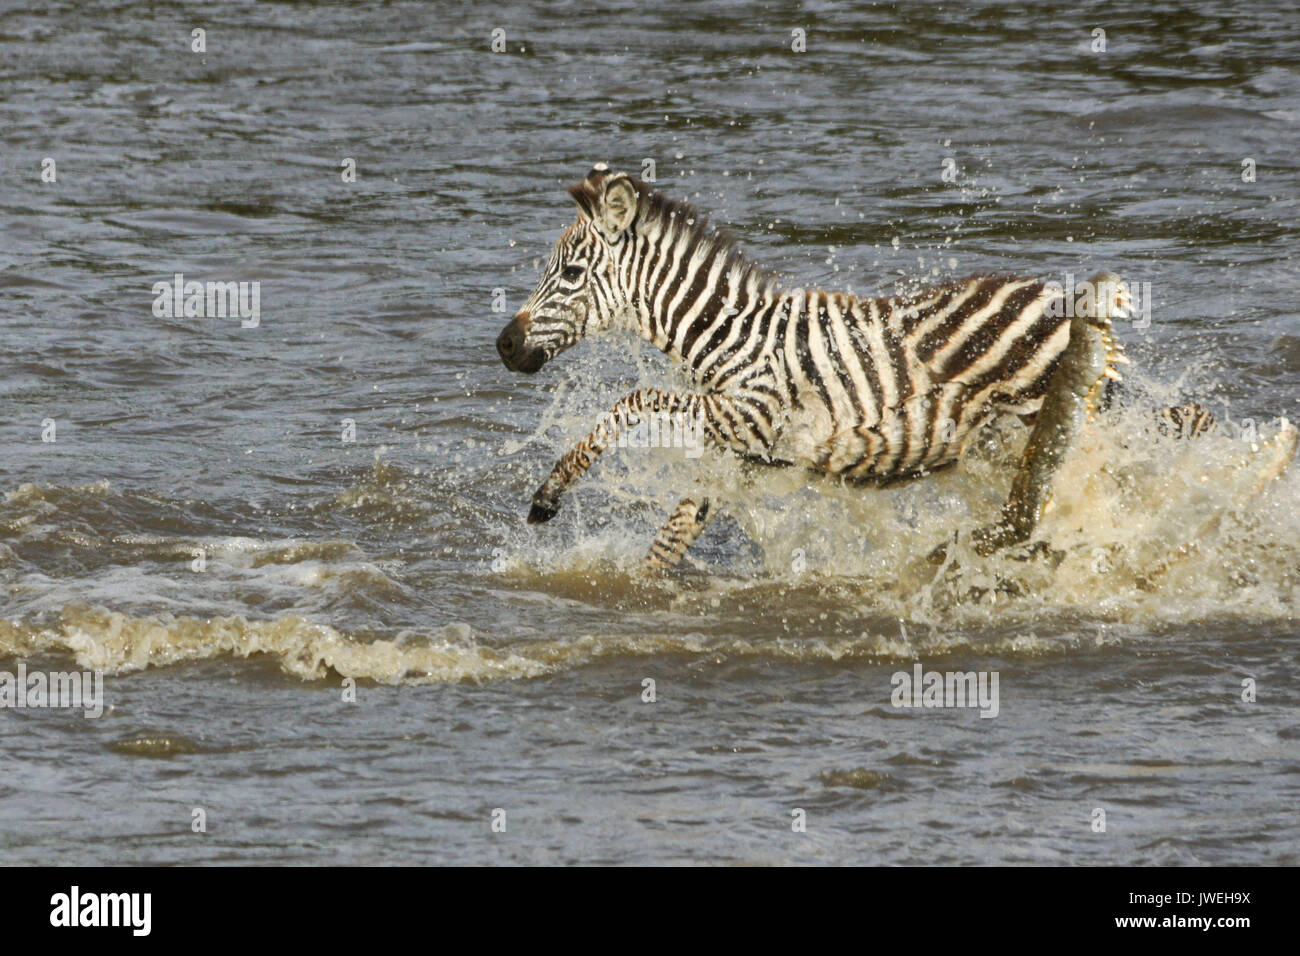 Young Burchell's (common or plains) zebra narrowly escapes while crossing crocodile-infested Mara River, Masai Mara Game Reserve, Kenya - Stock Image